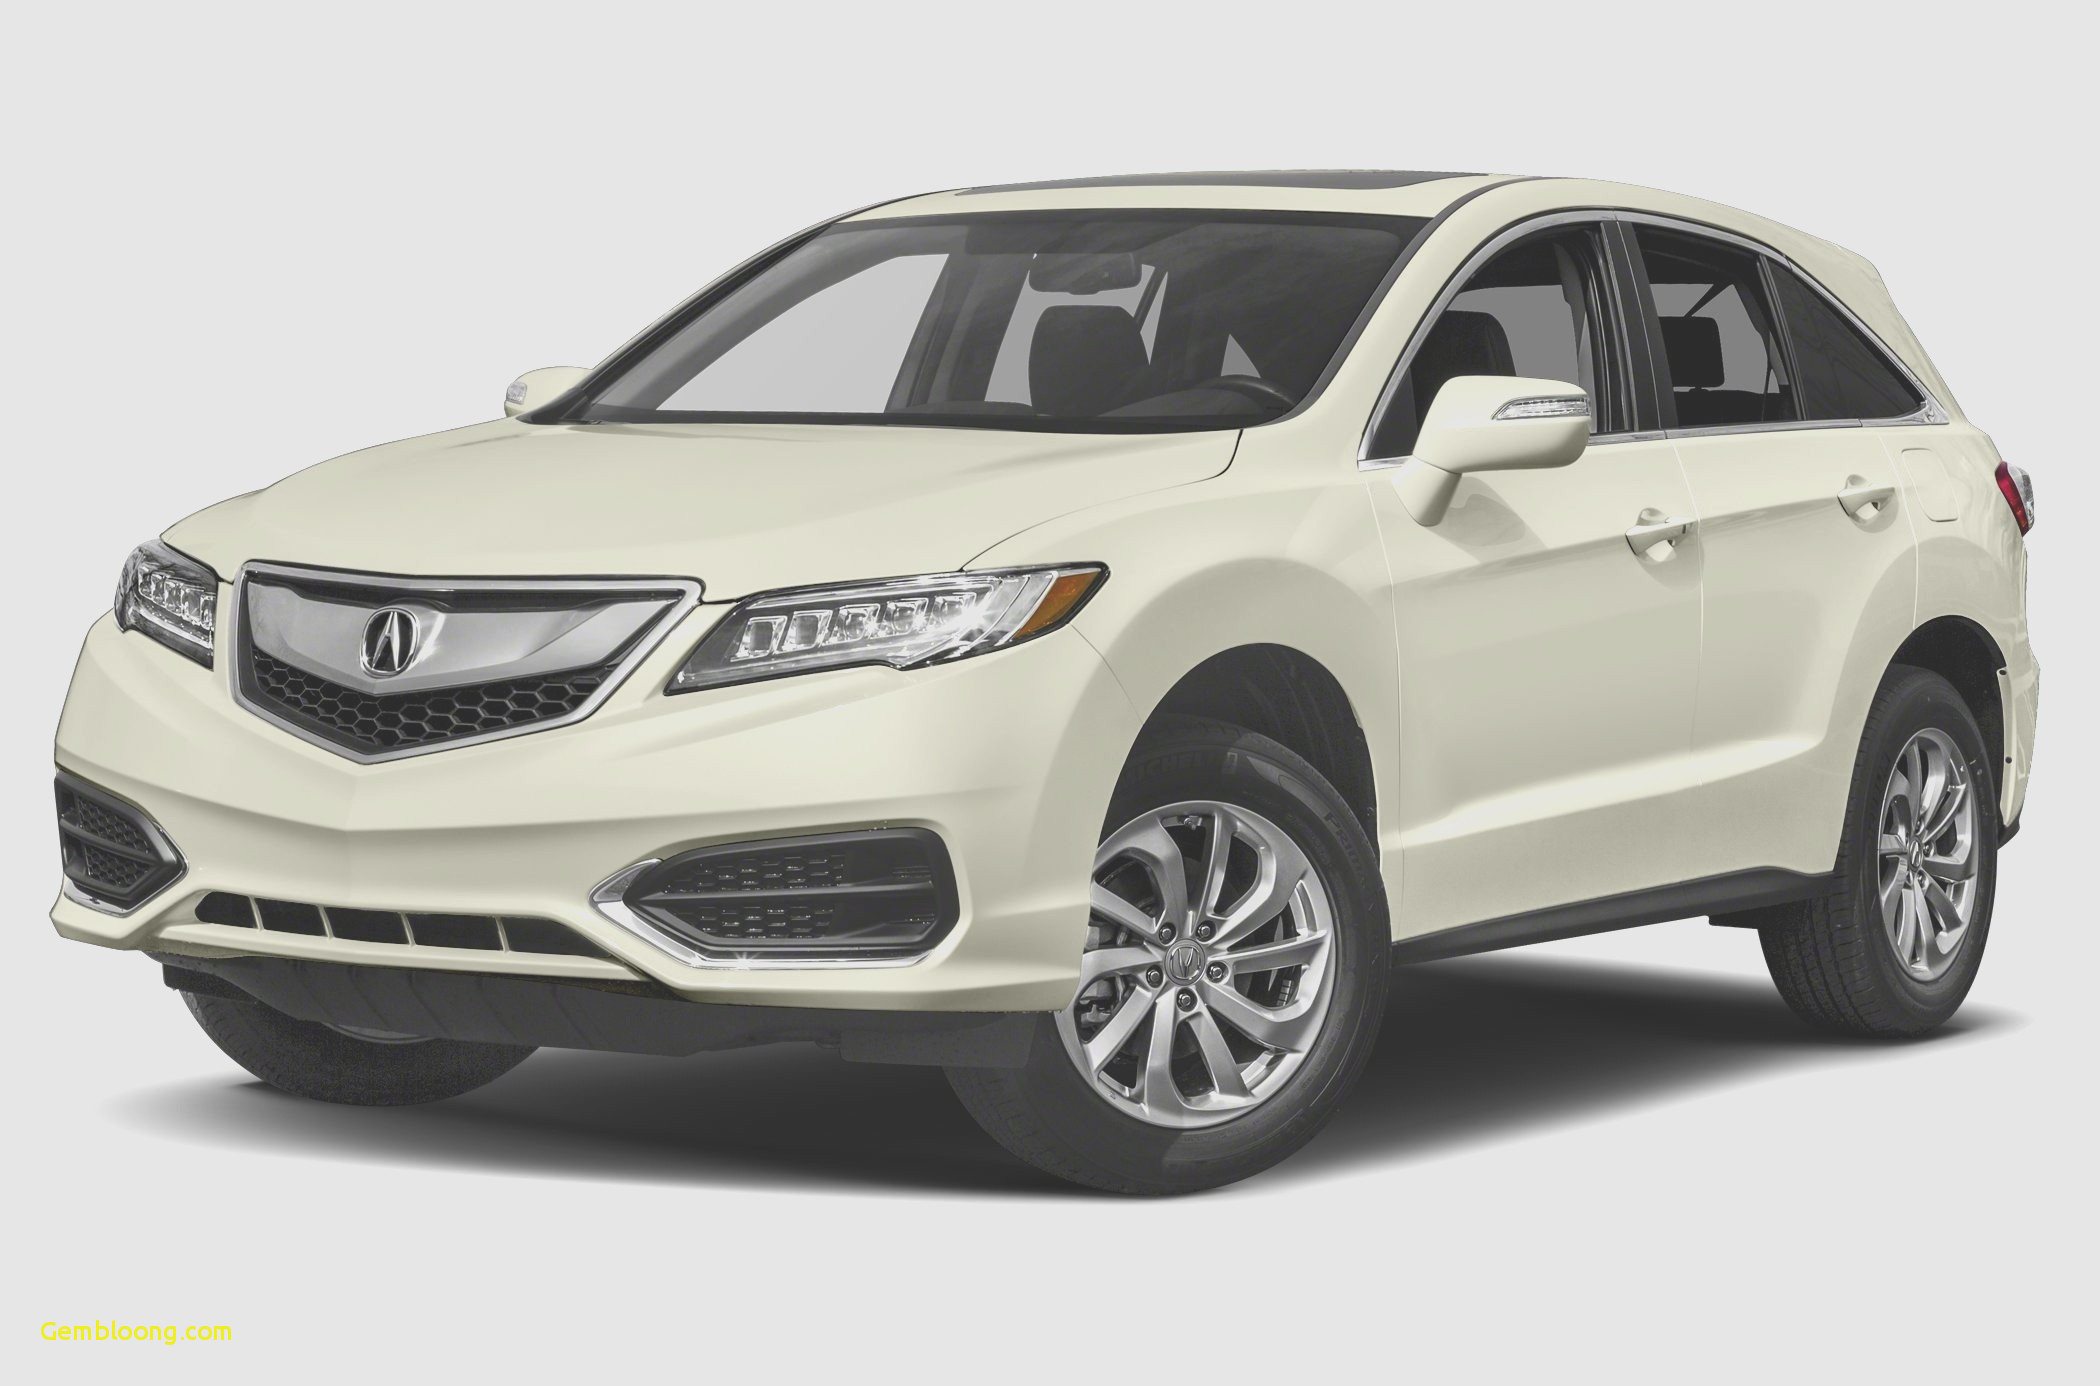 2020 Acura Rdx Acura Rdx Review New Acura Rdx 2020 Redesign – Your Car Wallpapper